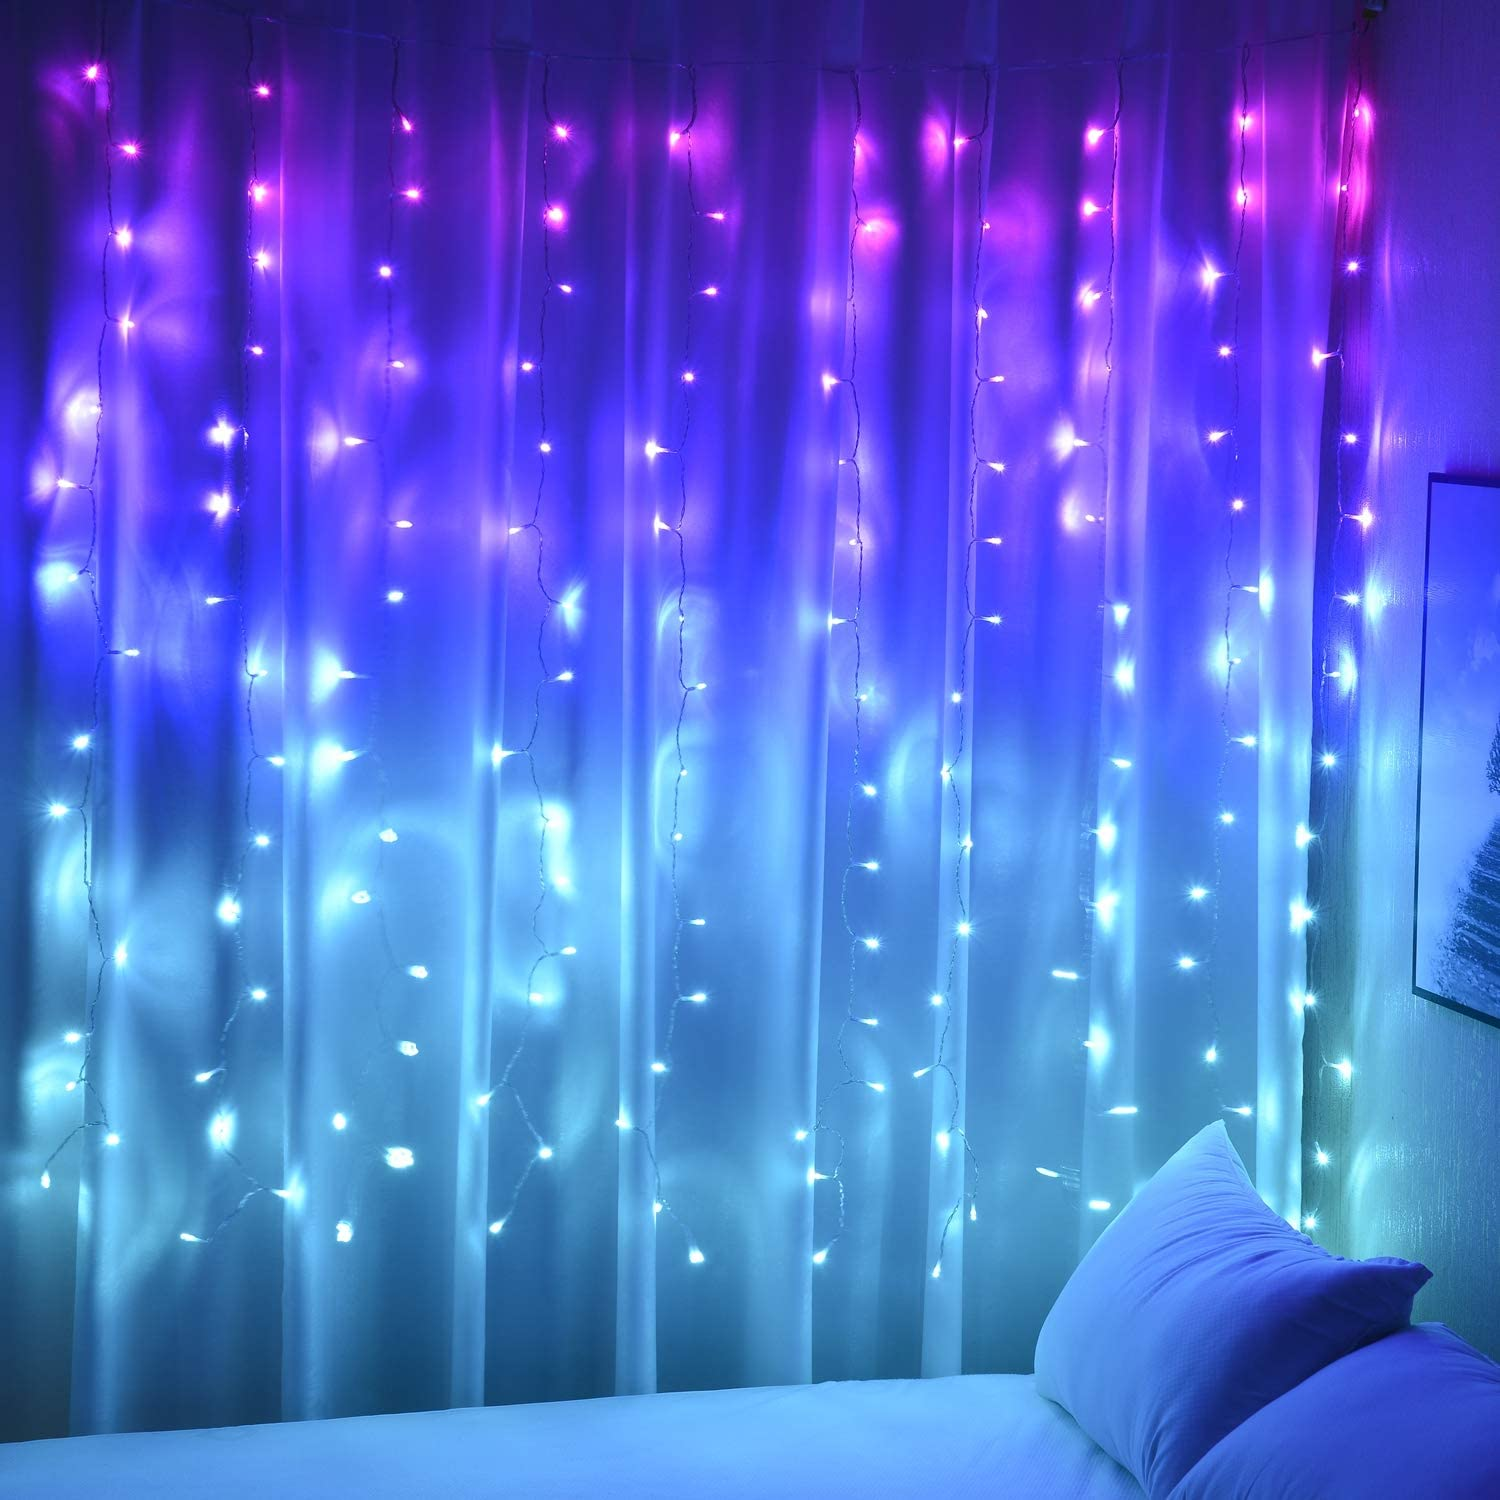 Curtain Lights Pink Blue Purple Fairy Lights For Bedroom Wall Hanging Christmas Lights Twinkly For Teen Girls Unicorn Mermaid Under The Sea Ocean Nautical Beach Themed Room Decor Purple Blue Ombre